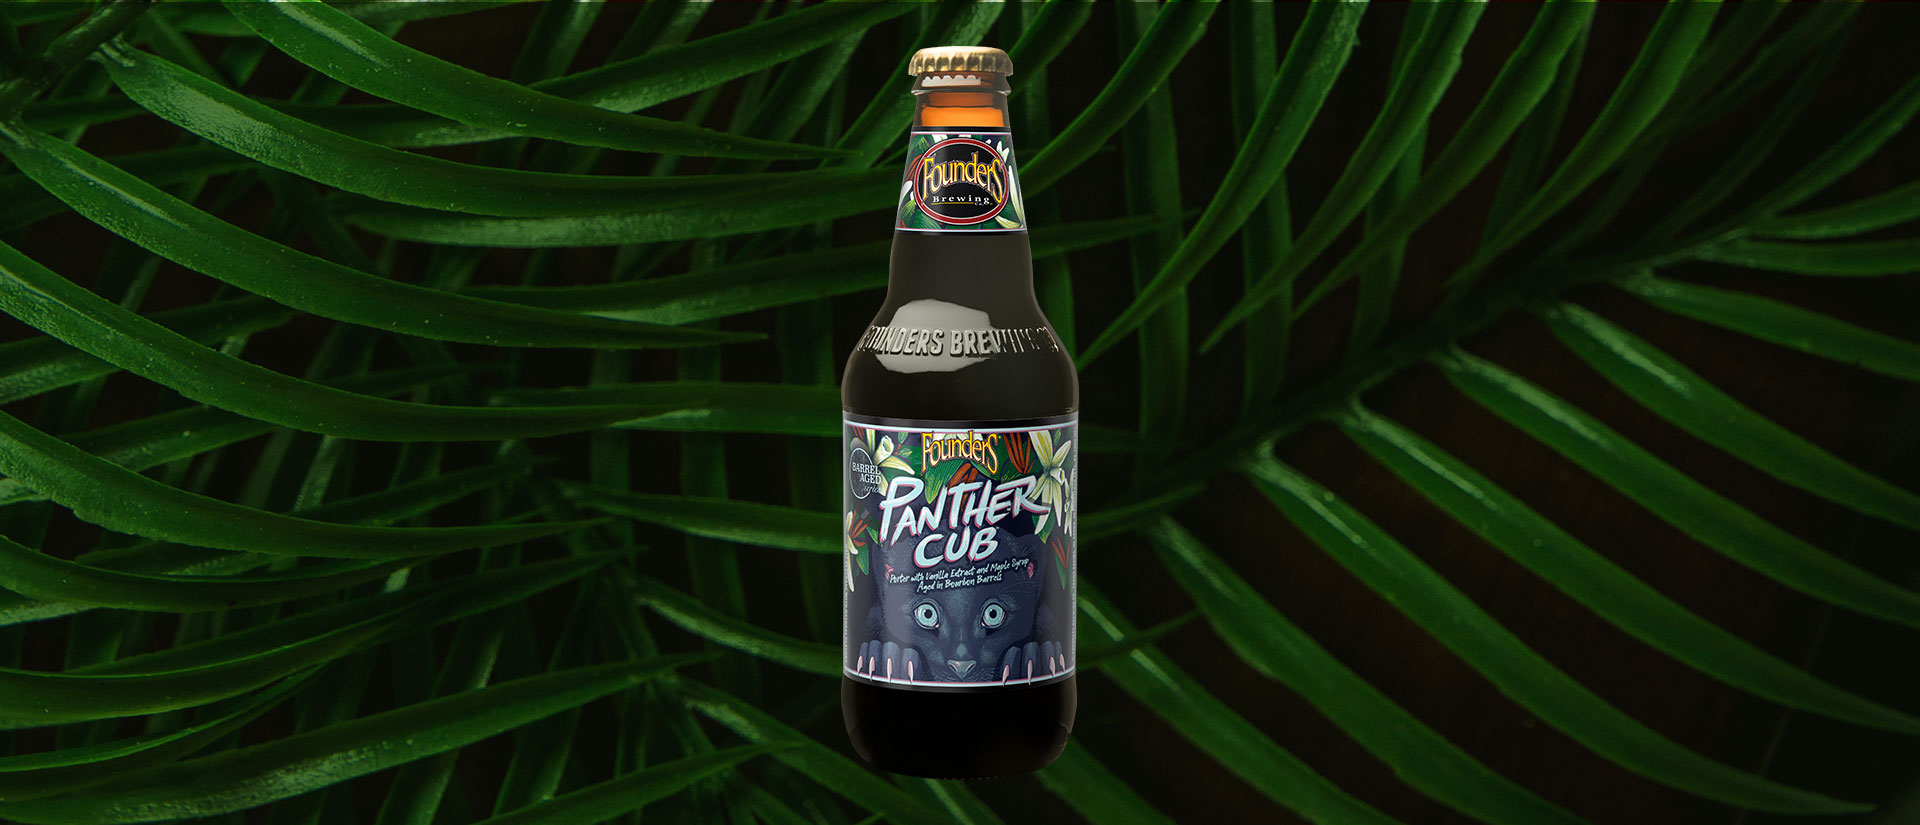 slider image with Panther Cub bottle on top of palm fronds